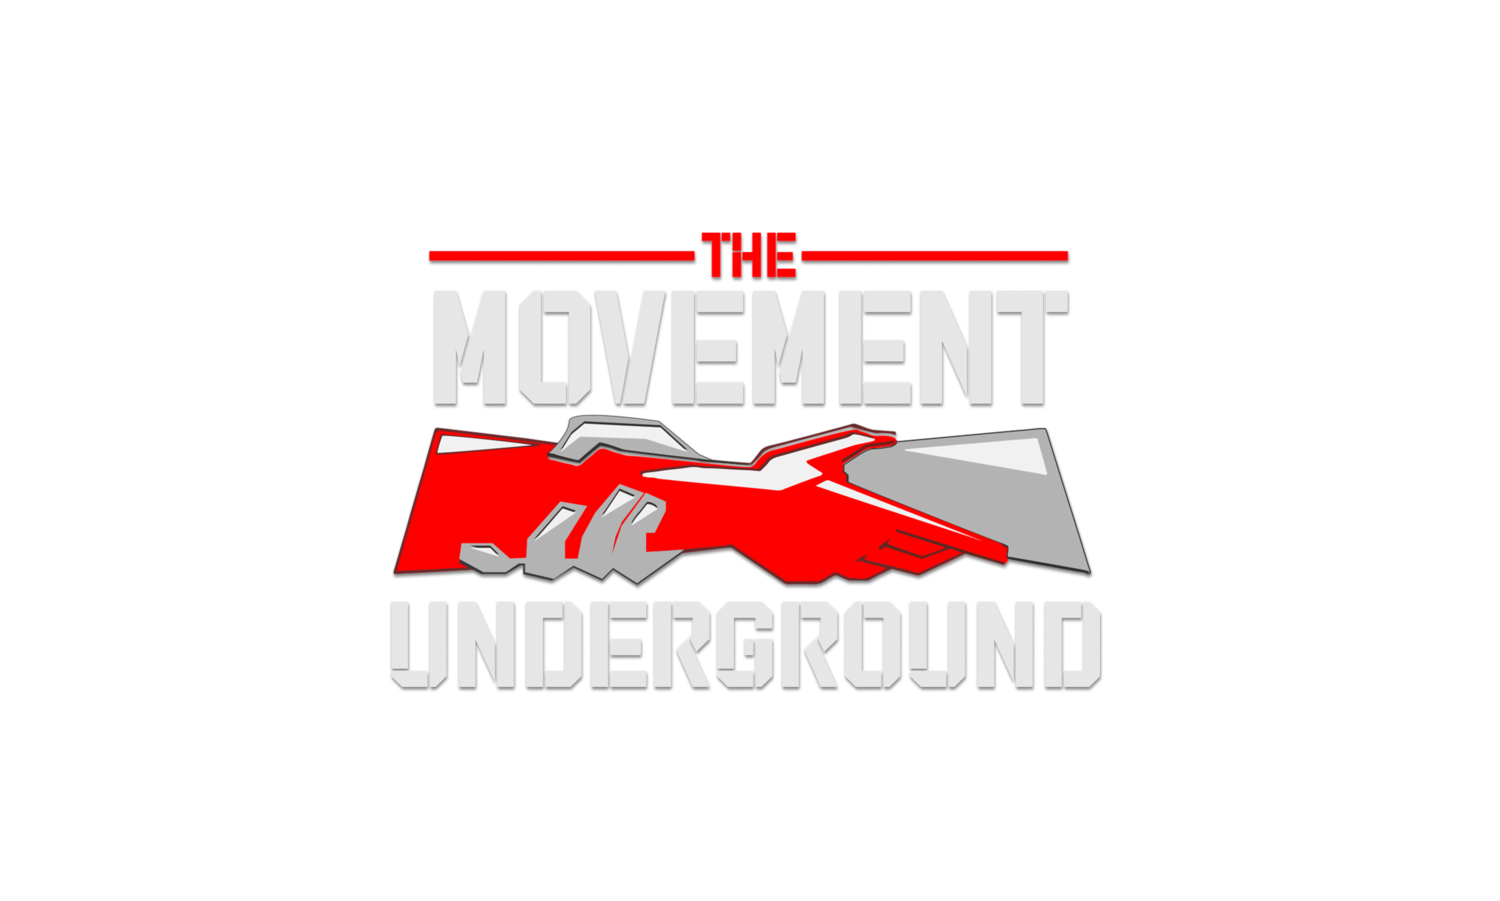 The Movement Underground